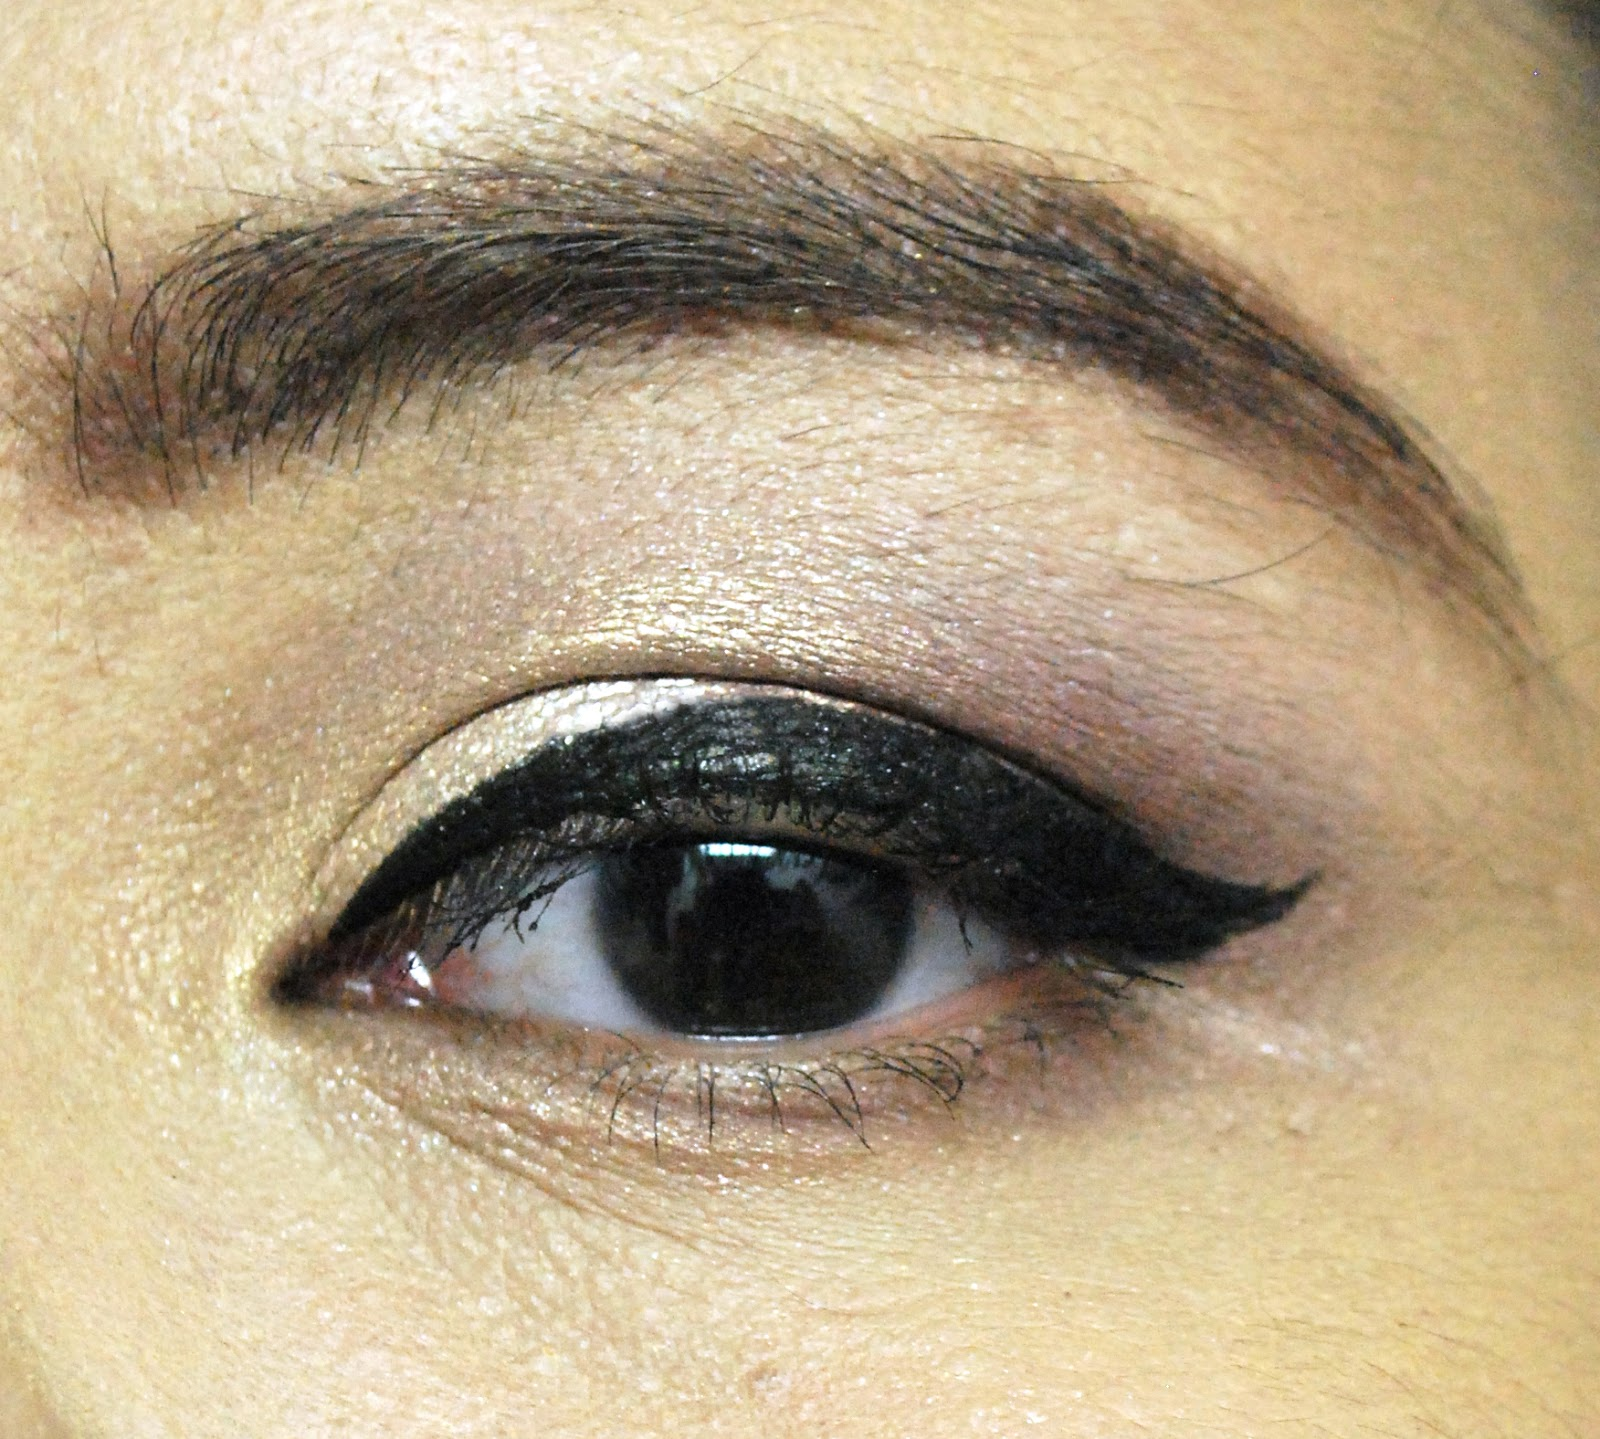 Peachy Pink Sisters Review Zoeva Cat Eye Pen In Blackest Black Bourjois Eyeliner Liner Stylo 61 Ultra I Just Love How It Is Its Not Too Matte And Glossy